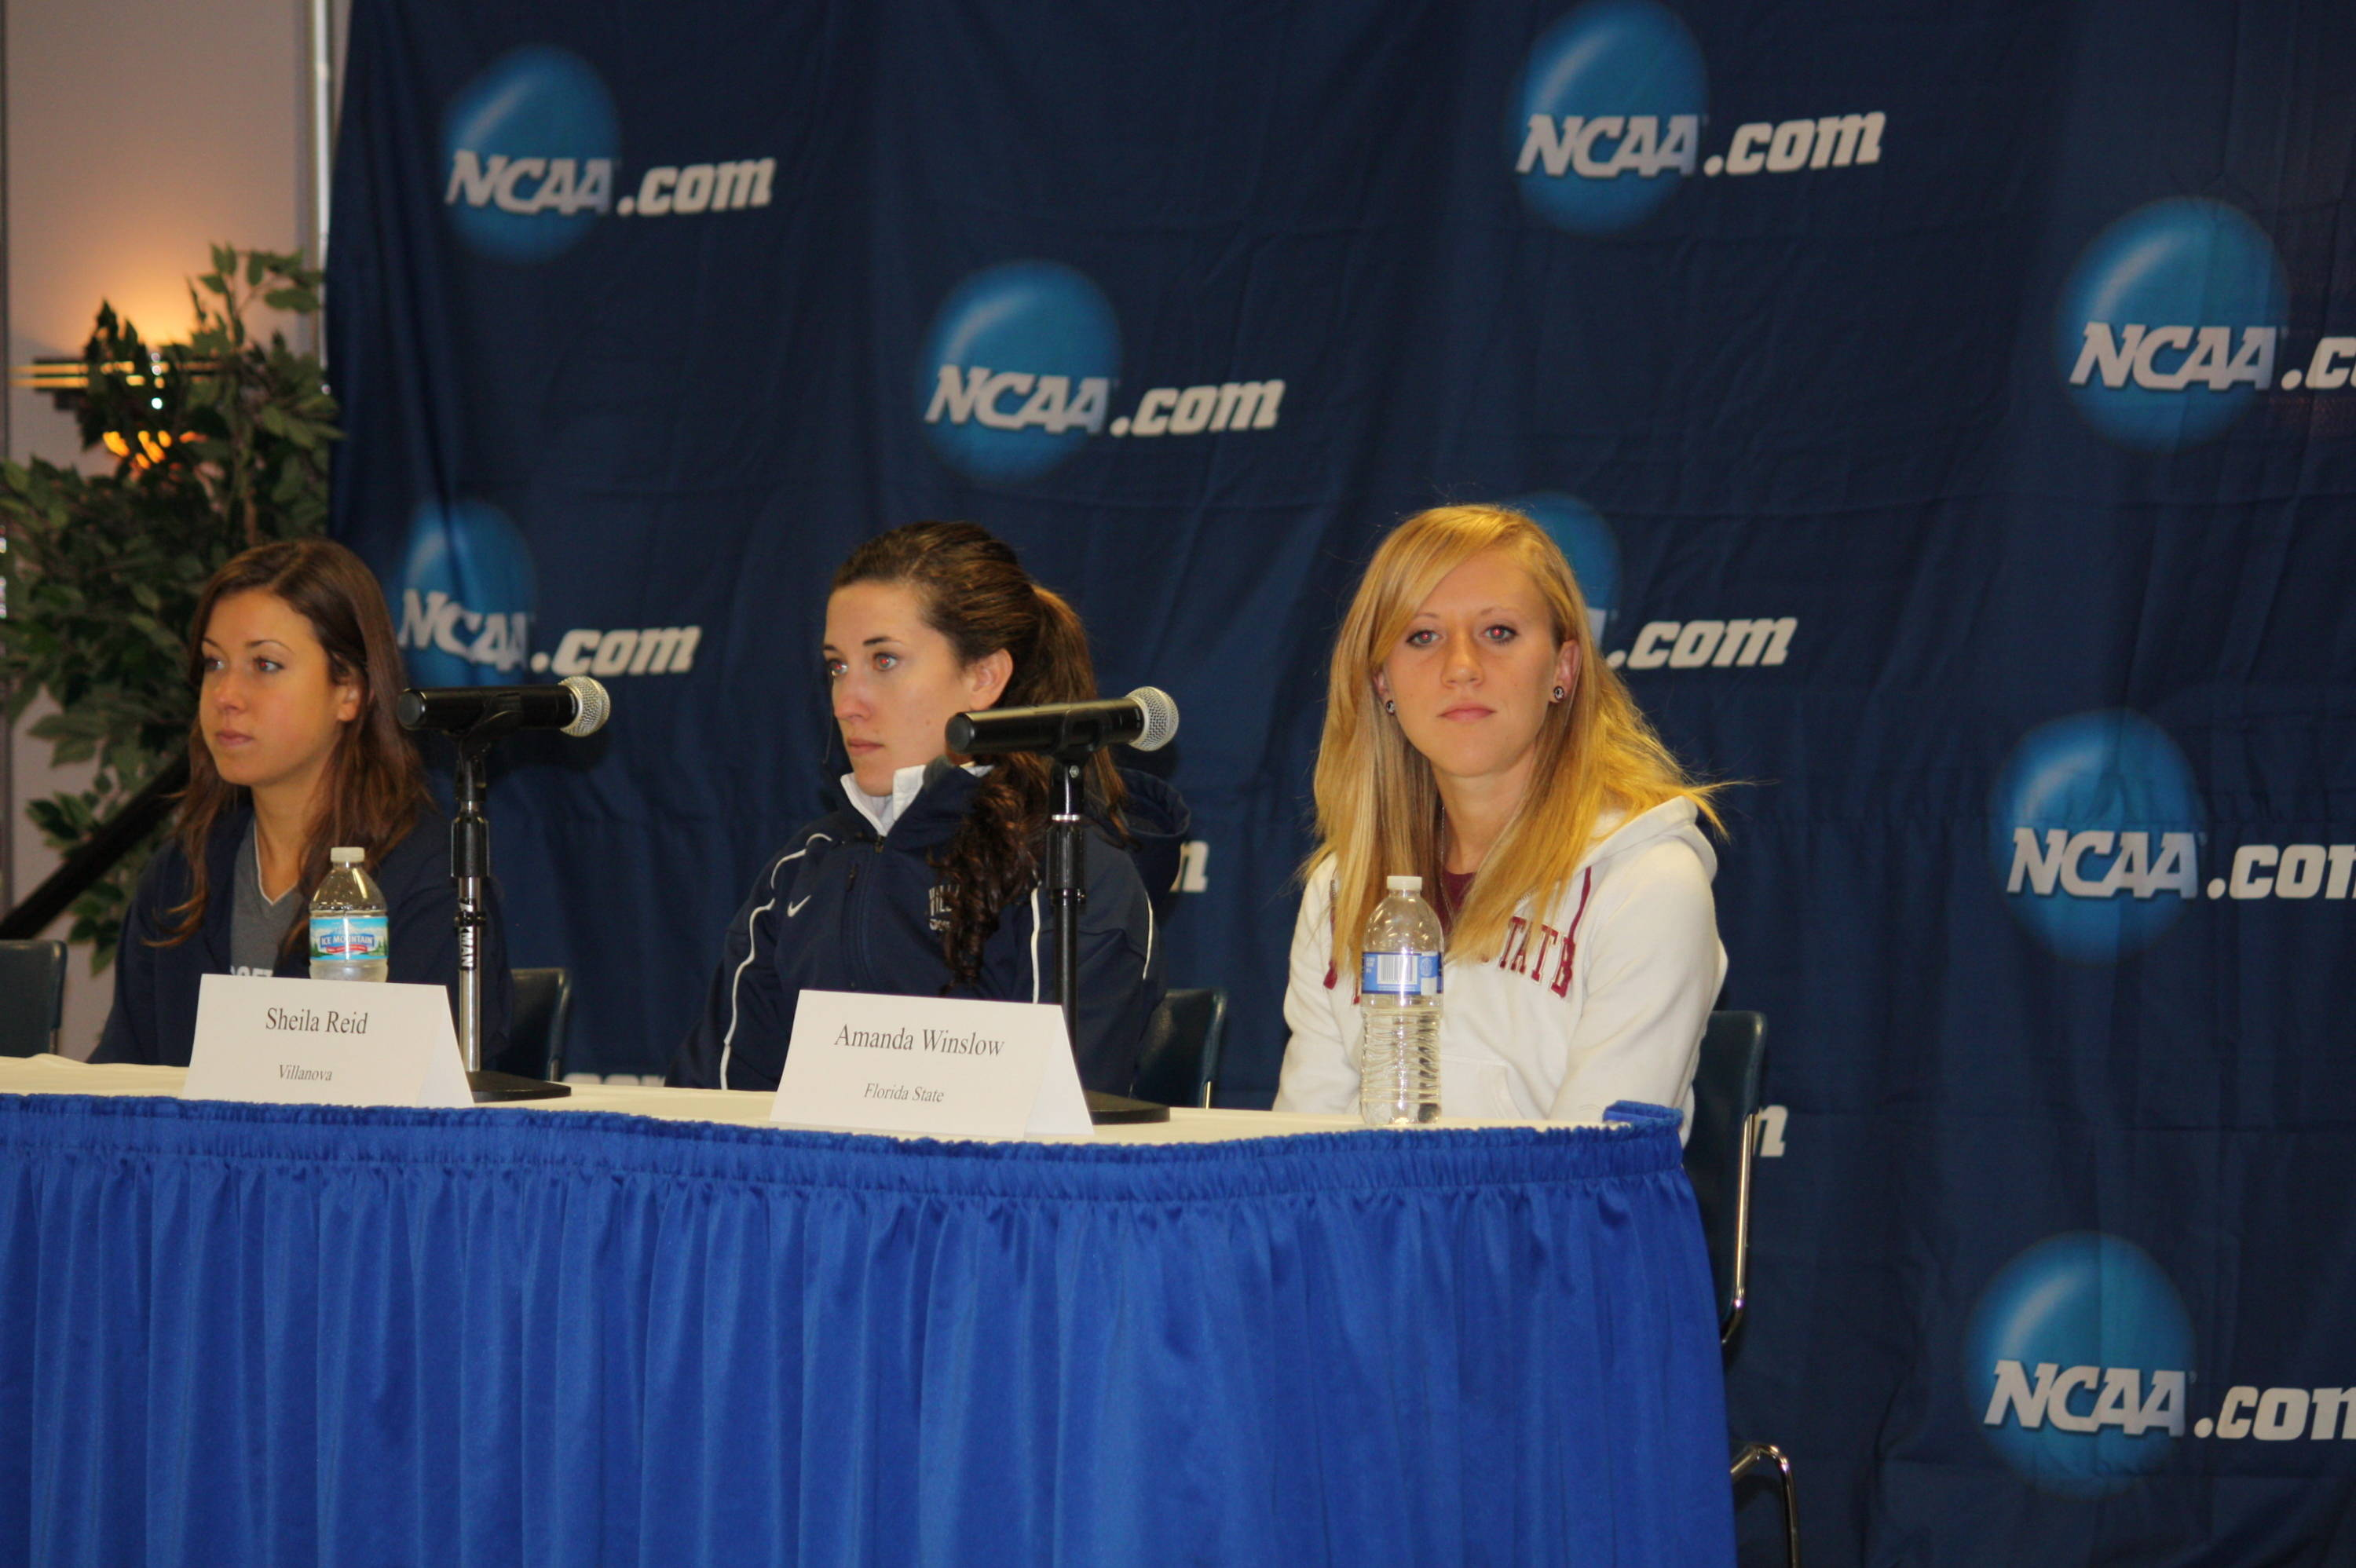 FSU's Amanda Winslow, right, is joined by Villanova's Sheila Reid and Georgetown's Emily Infeld at Sunday's NCAA Cross Country Championship press conference.